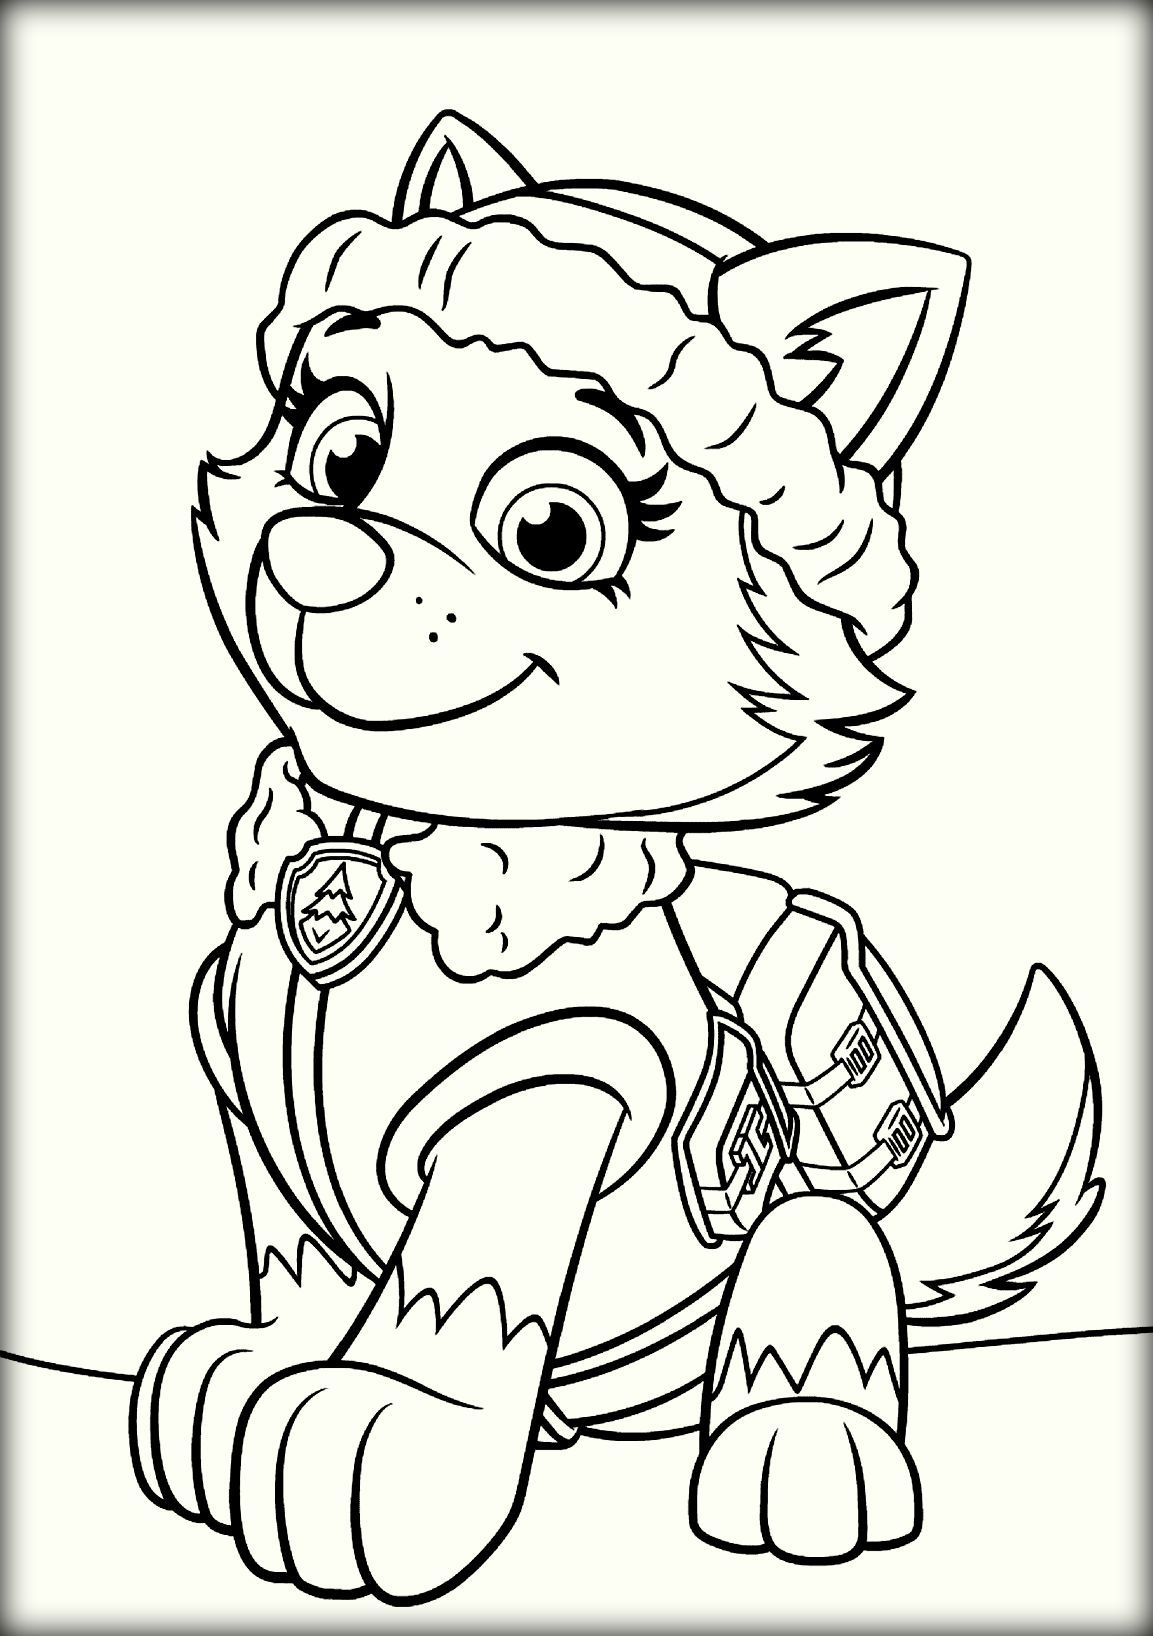 Puppy Dog Pals Coloring Pages At Getcolorings